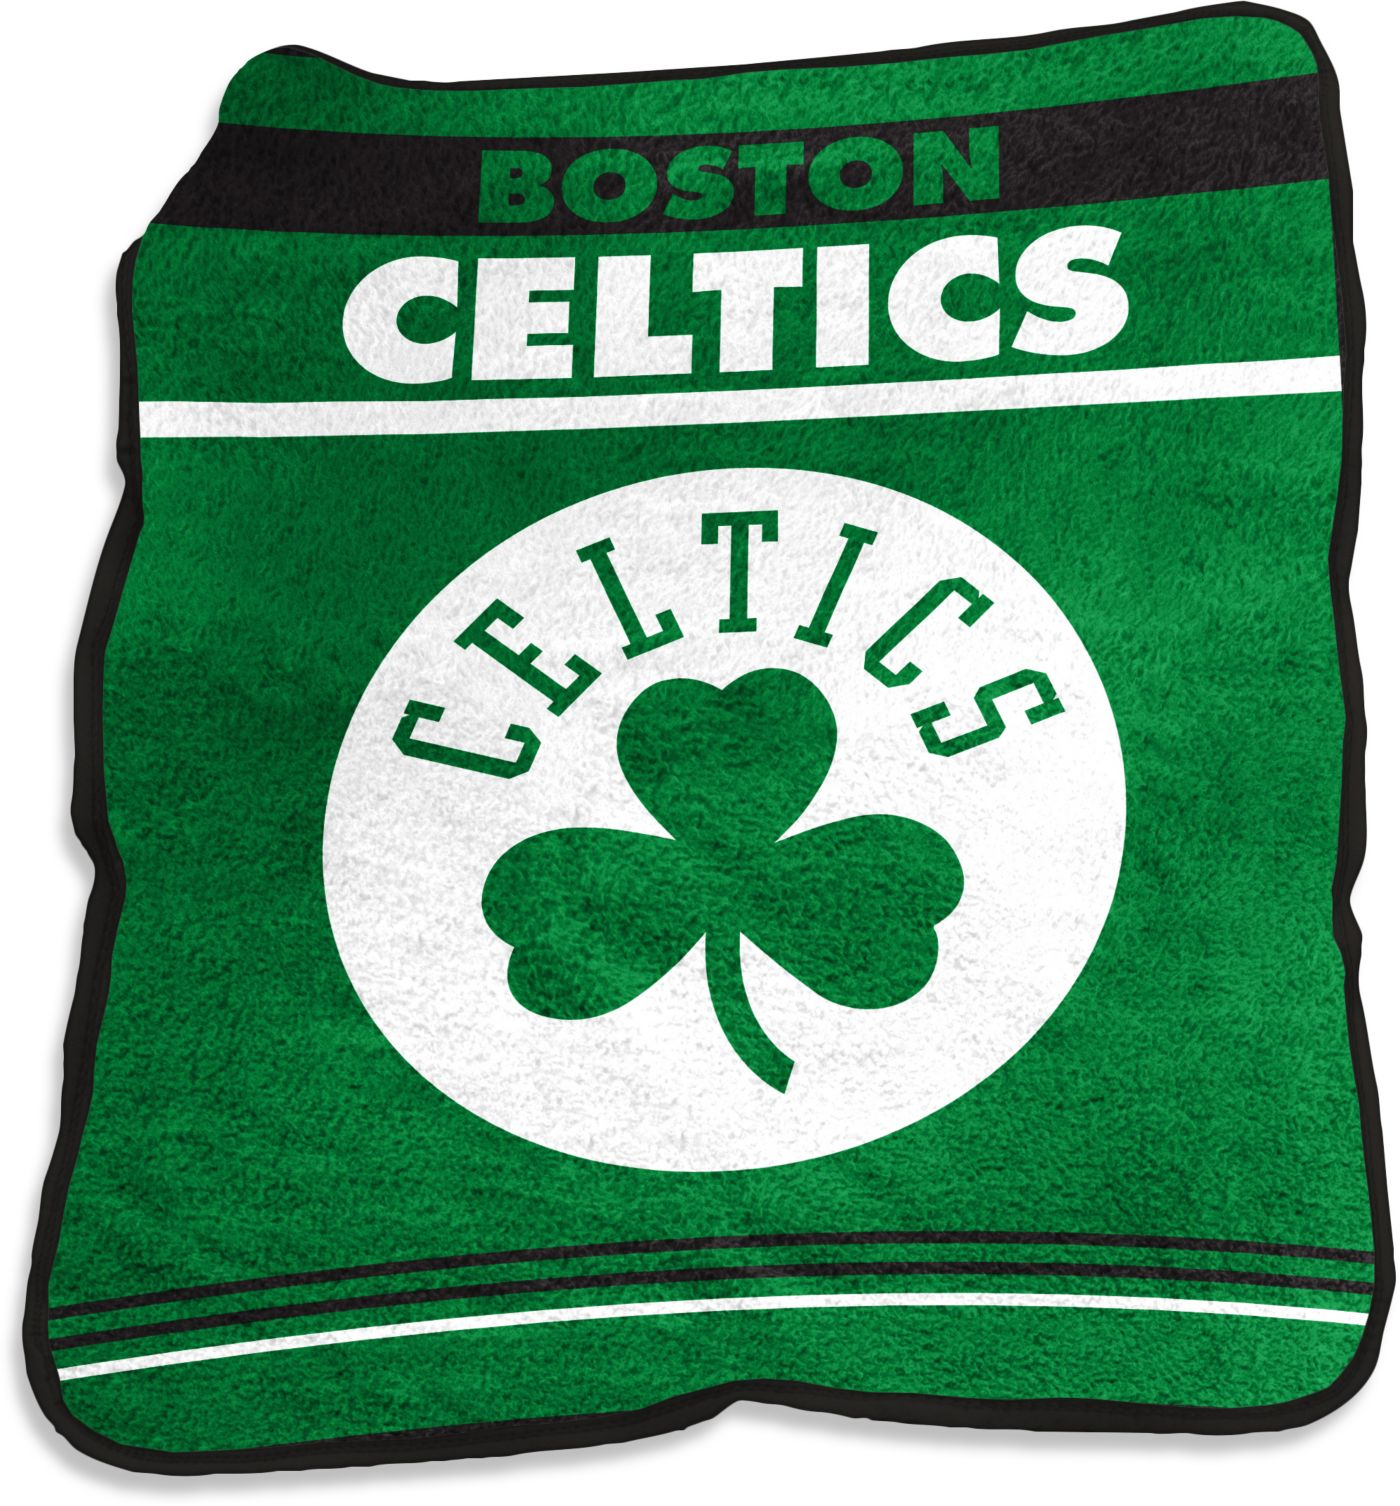 Boston Celtics Game Day Throw Blanket